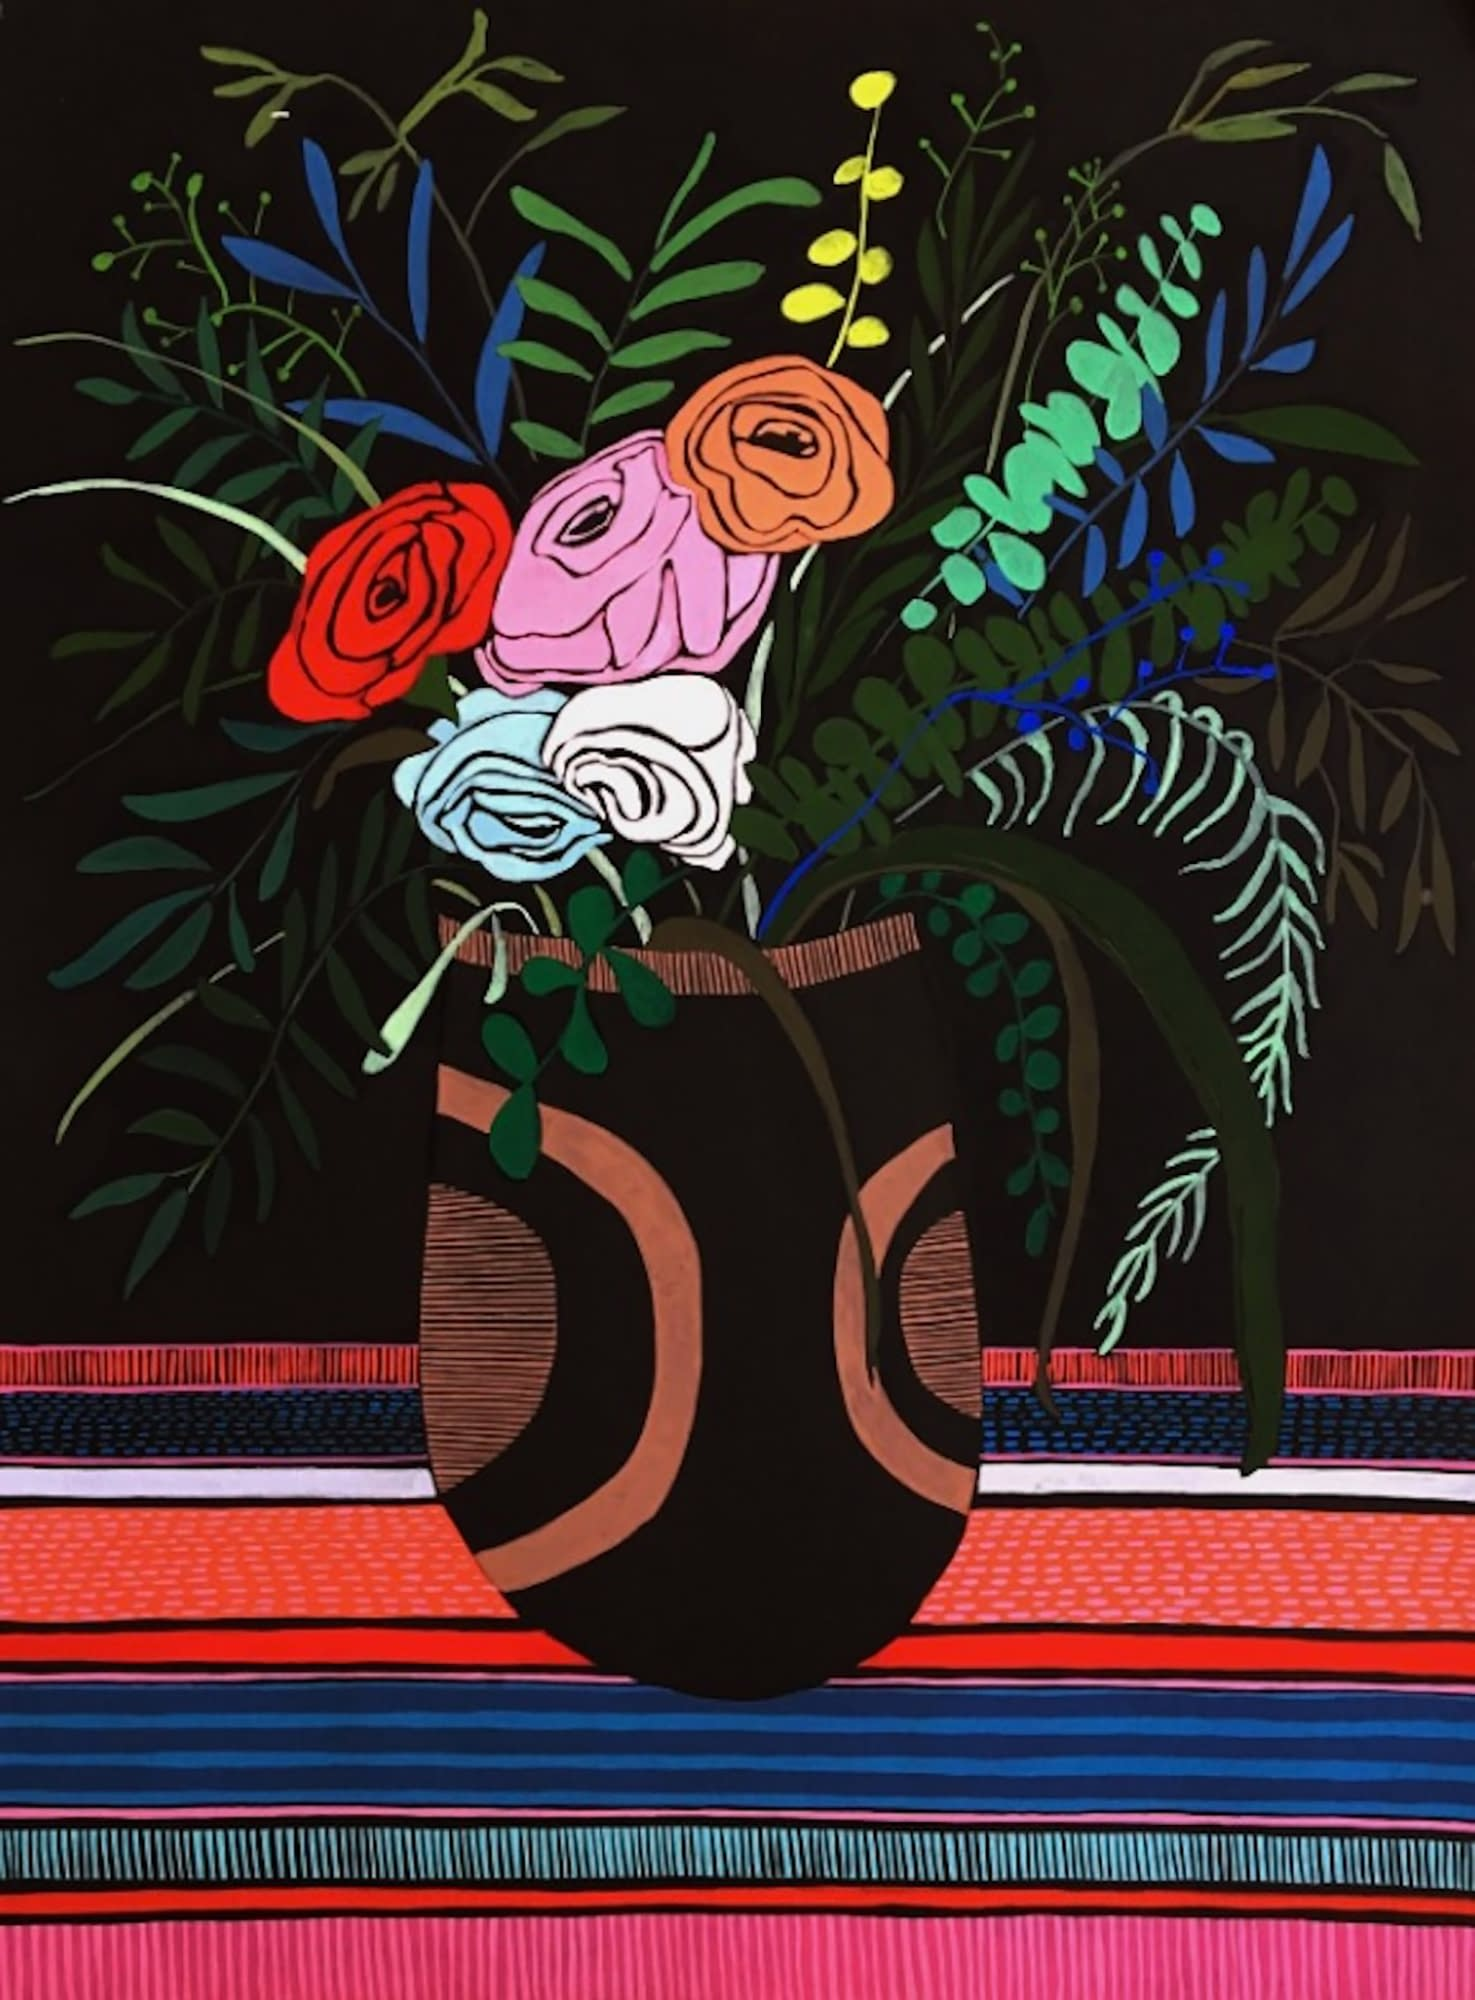 Flowers_2_mary_finlayson_Gouache_on_Paper-22×16.5_inches_unframed